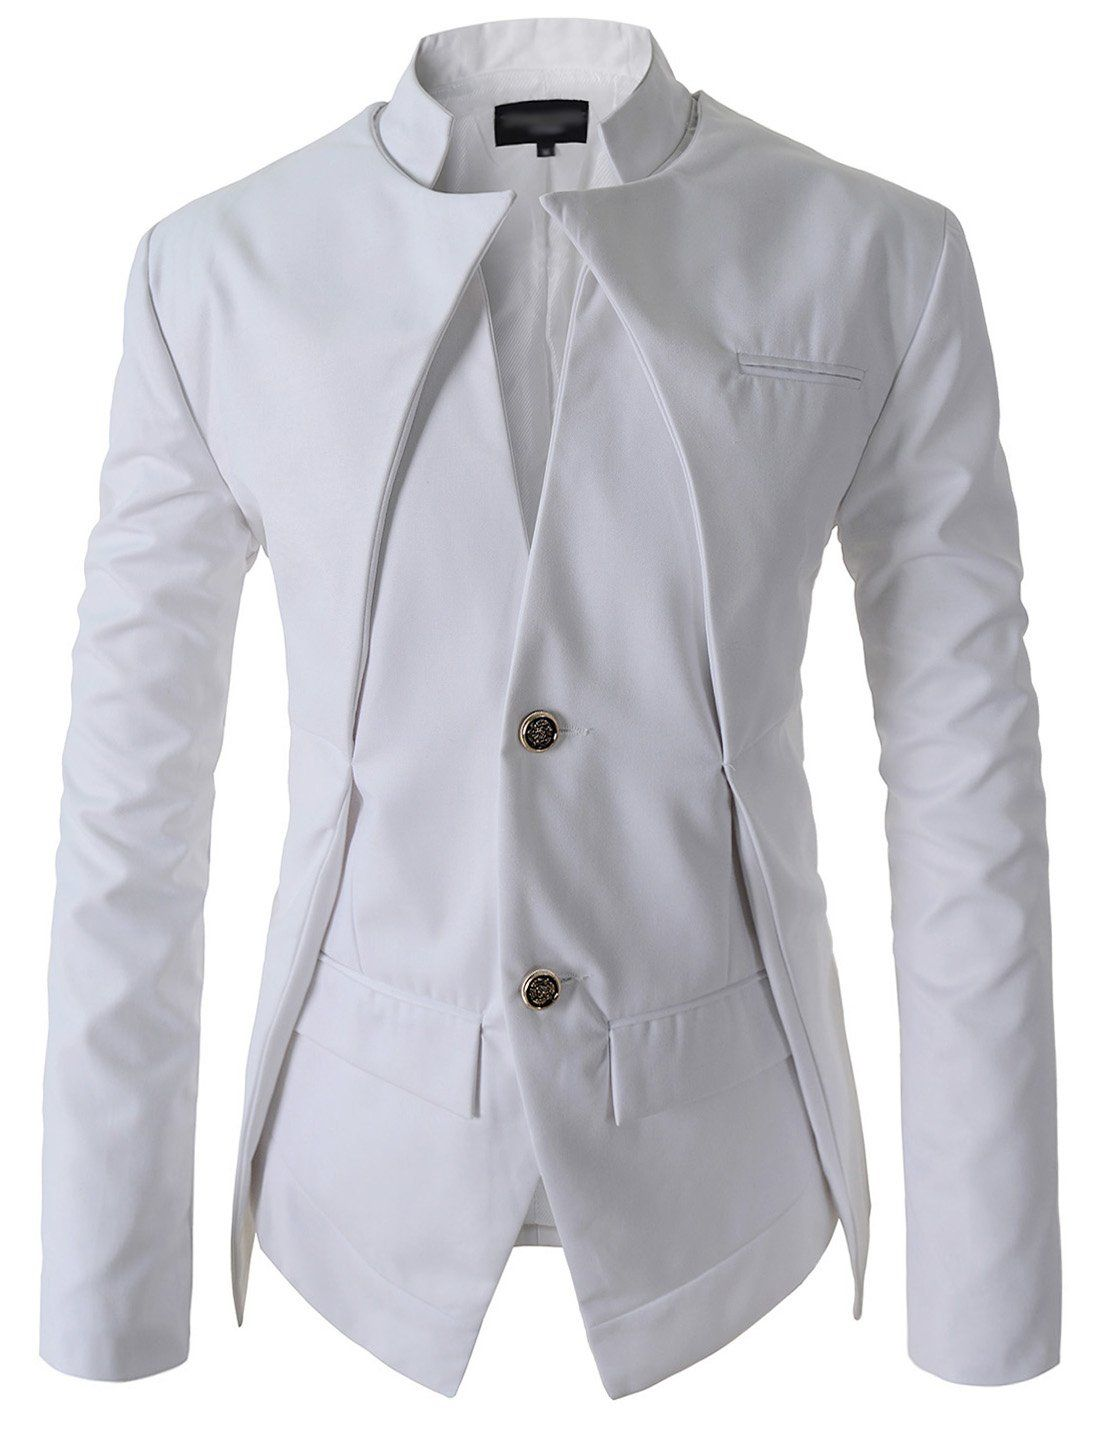 Showblanc(SBNJK7) Man s Chinese Collar Double Layered 2 Button Casual  Jacket WHITE Medium(US Small) b229ca2d89522